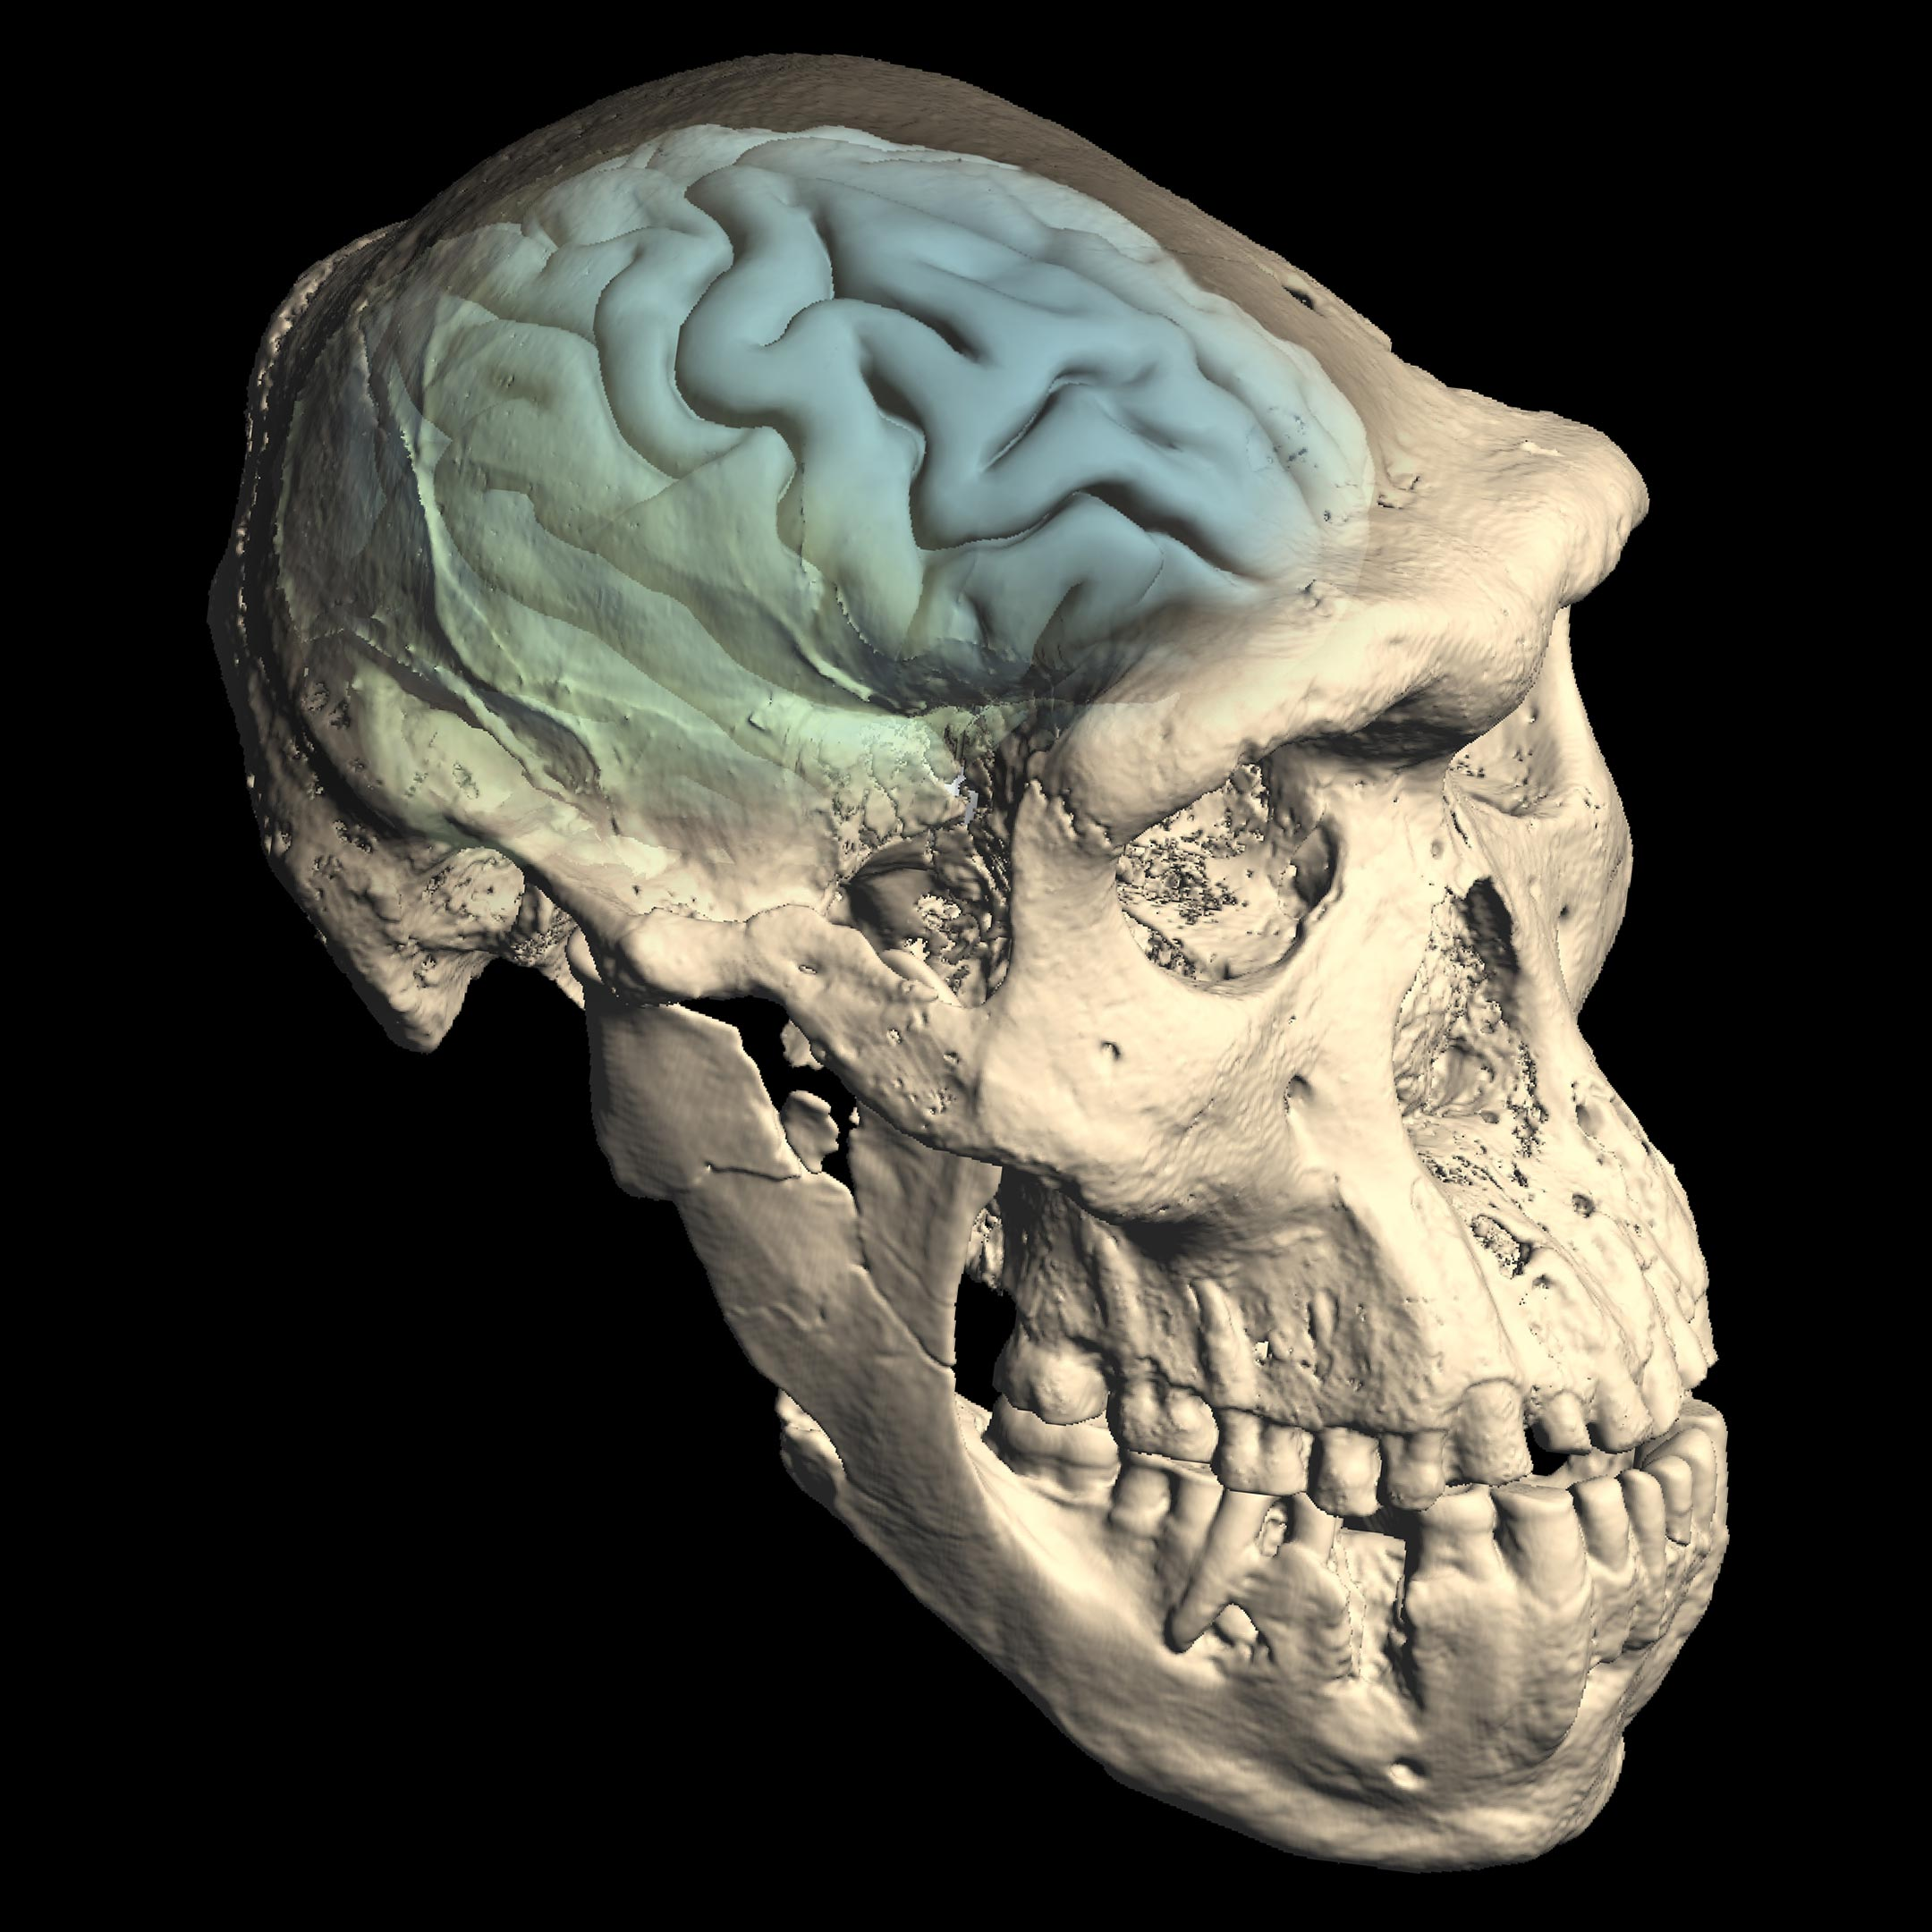 Modern Human-Like Brains Evolved Long After Earliest Humans First Dispersed From Africa